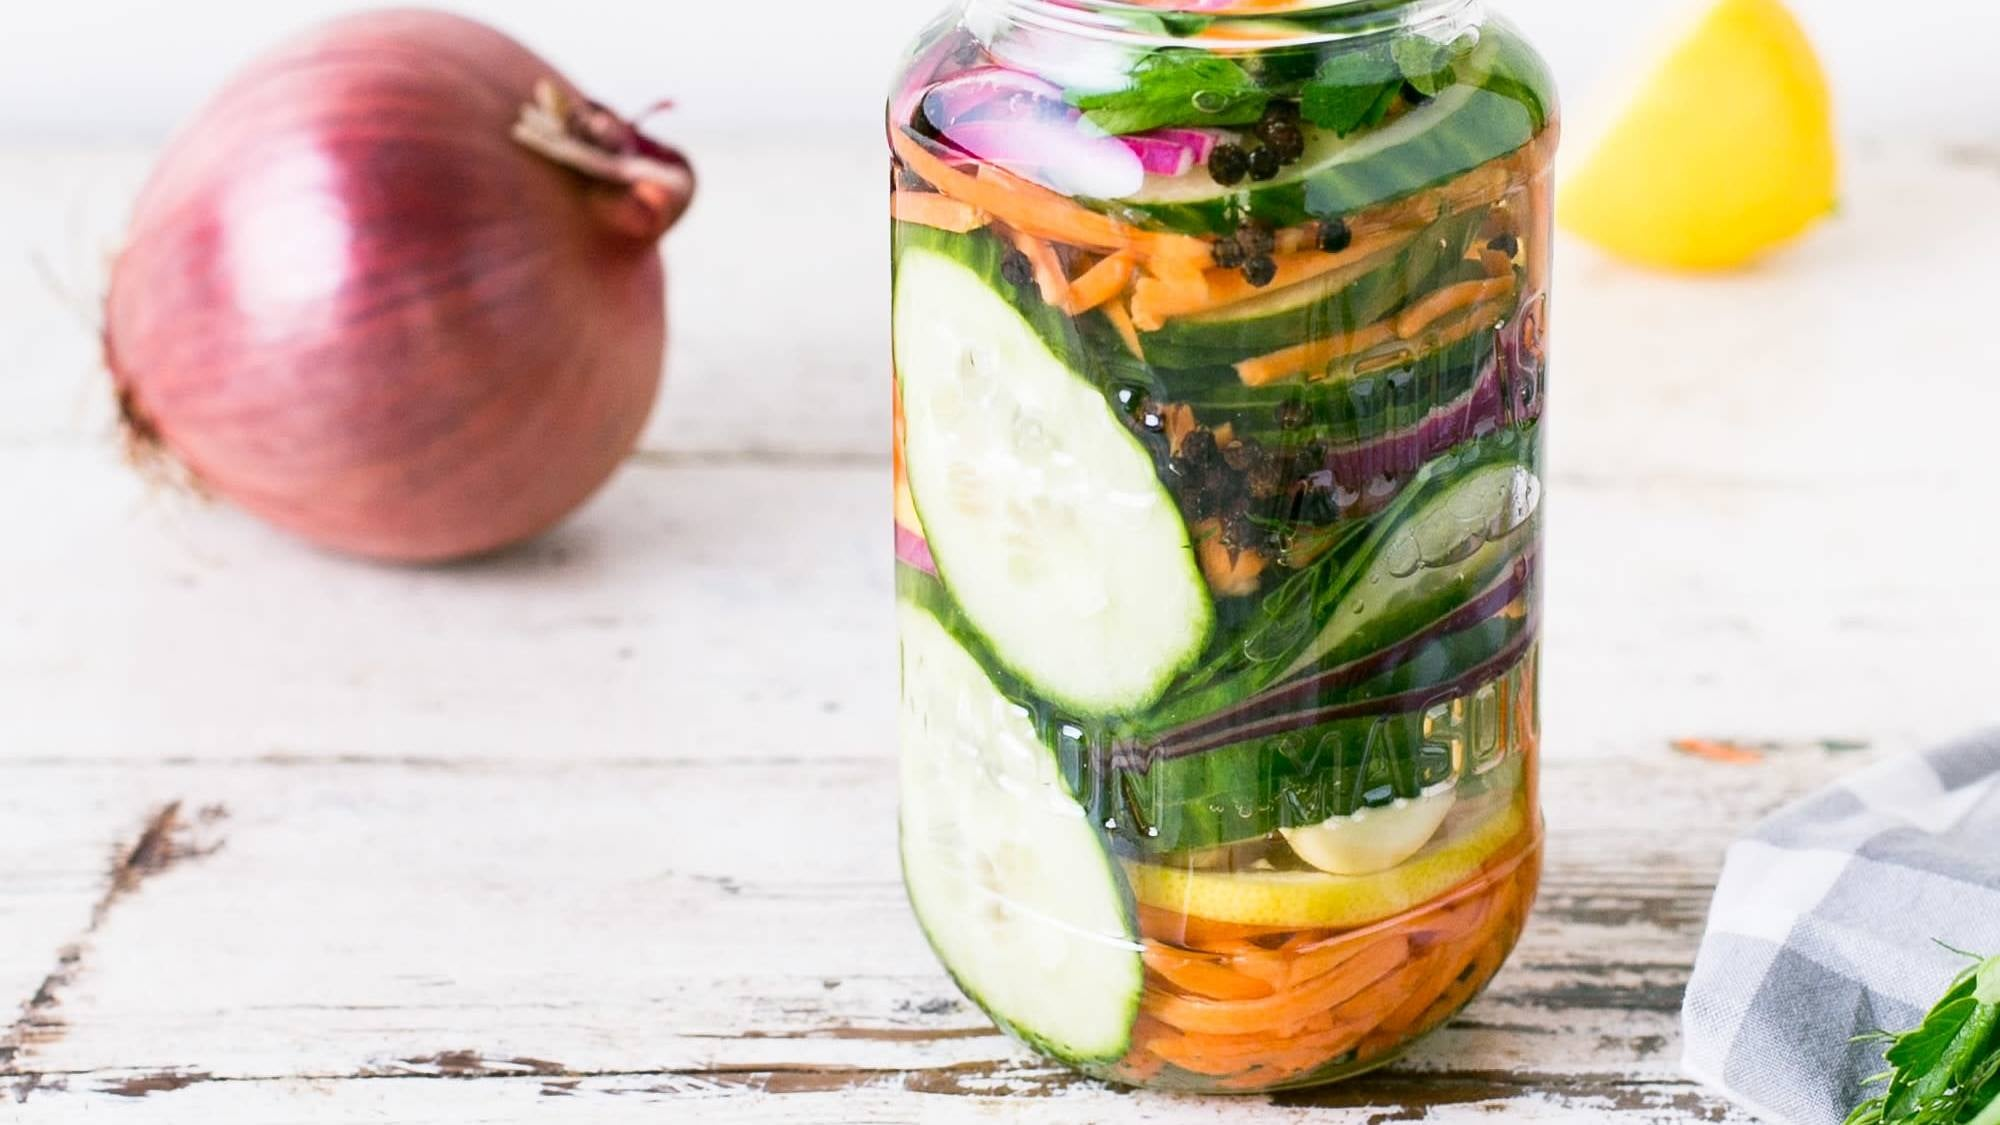 Make Quick Pickles Even Quicker By Massaging Your Veggies